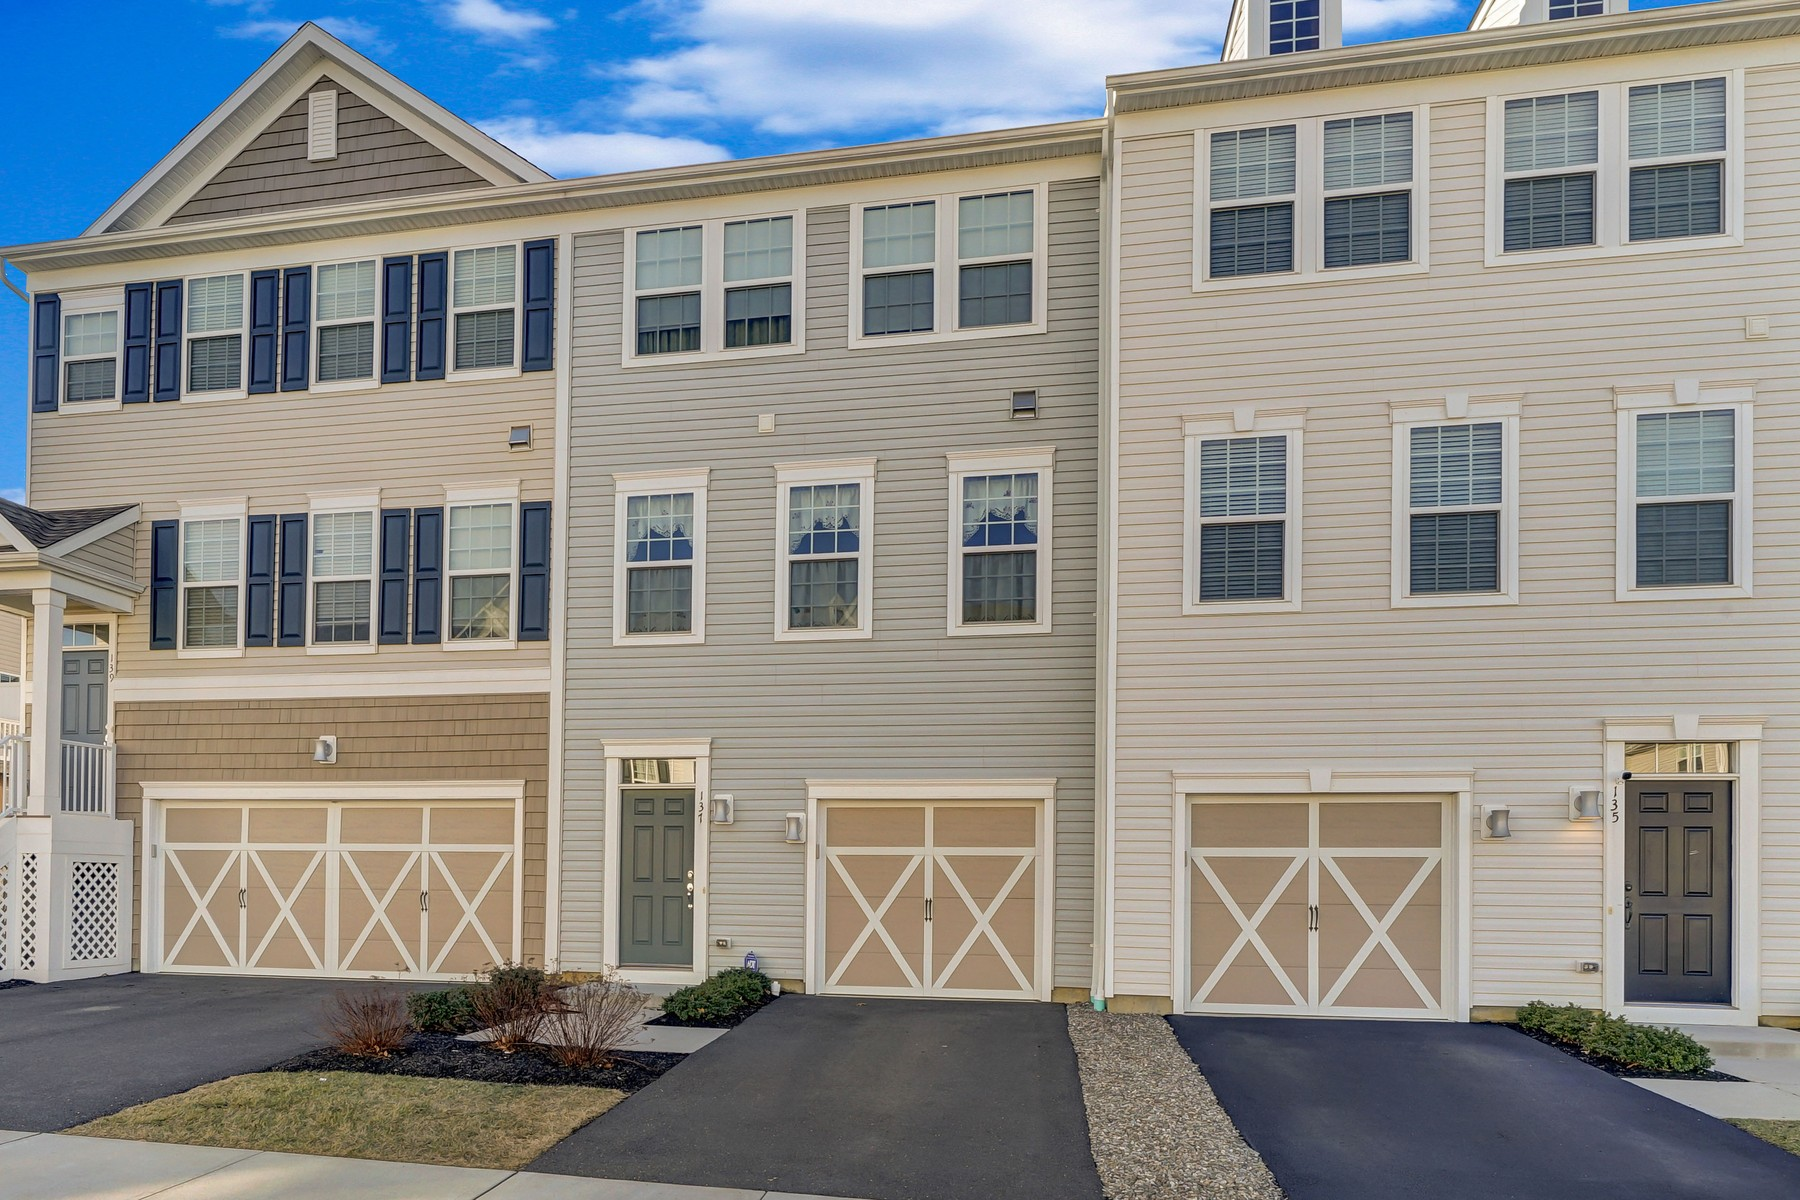 Condominium for Sale at Spacious 3 Level Luxury Townhome 137 Beacon Lane, Eatontown, New Jersey, 07724 United States